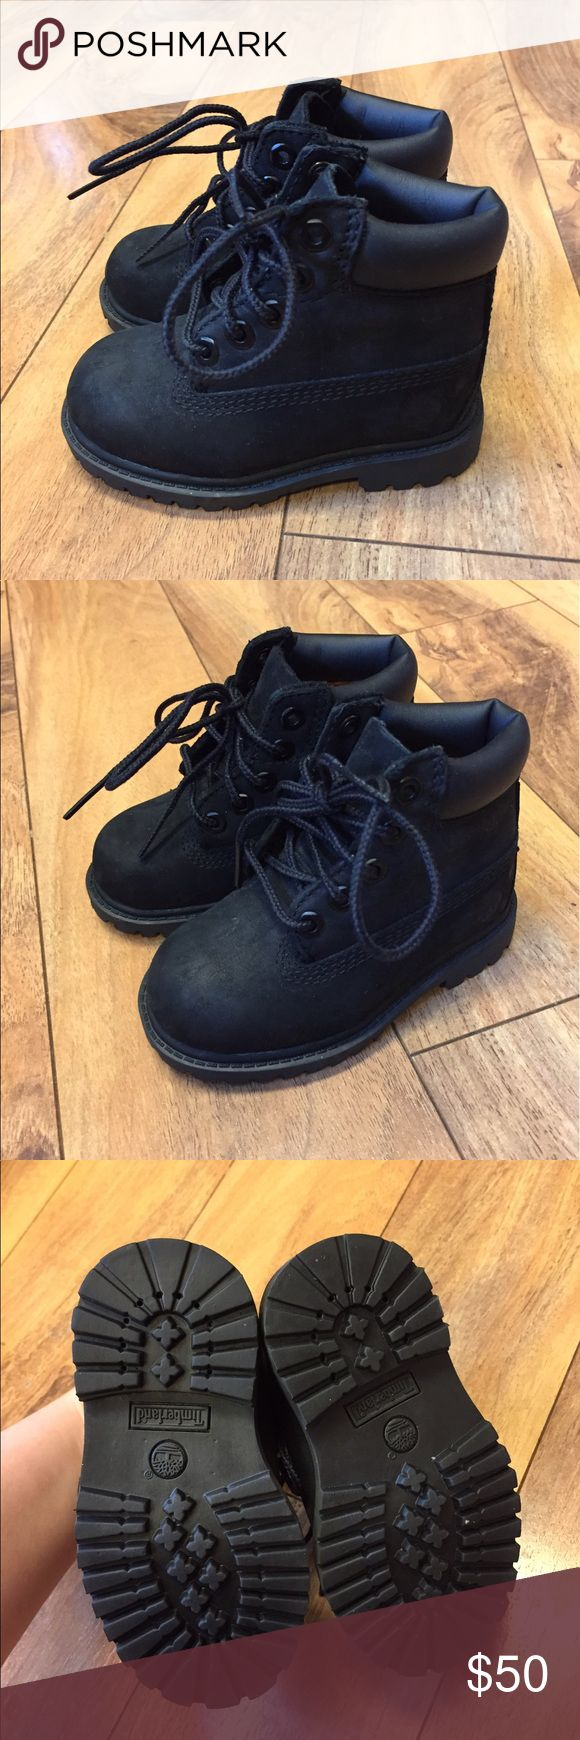 💕💕💕Timberland Black Boots Toddler Size 5 Guaranteed authentic. Used for an hour for my sons first birthday so these are practically new! Flaws include: none! Ask to bundle for a discount. No free ship!  *shoes do not come in original box, just priority box for shipping. Timberland Shoes Boots